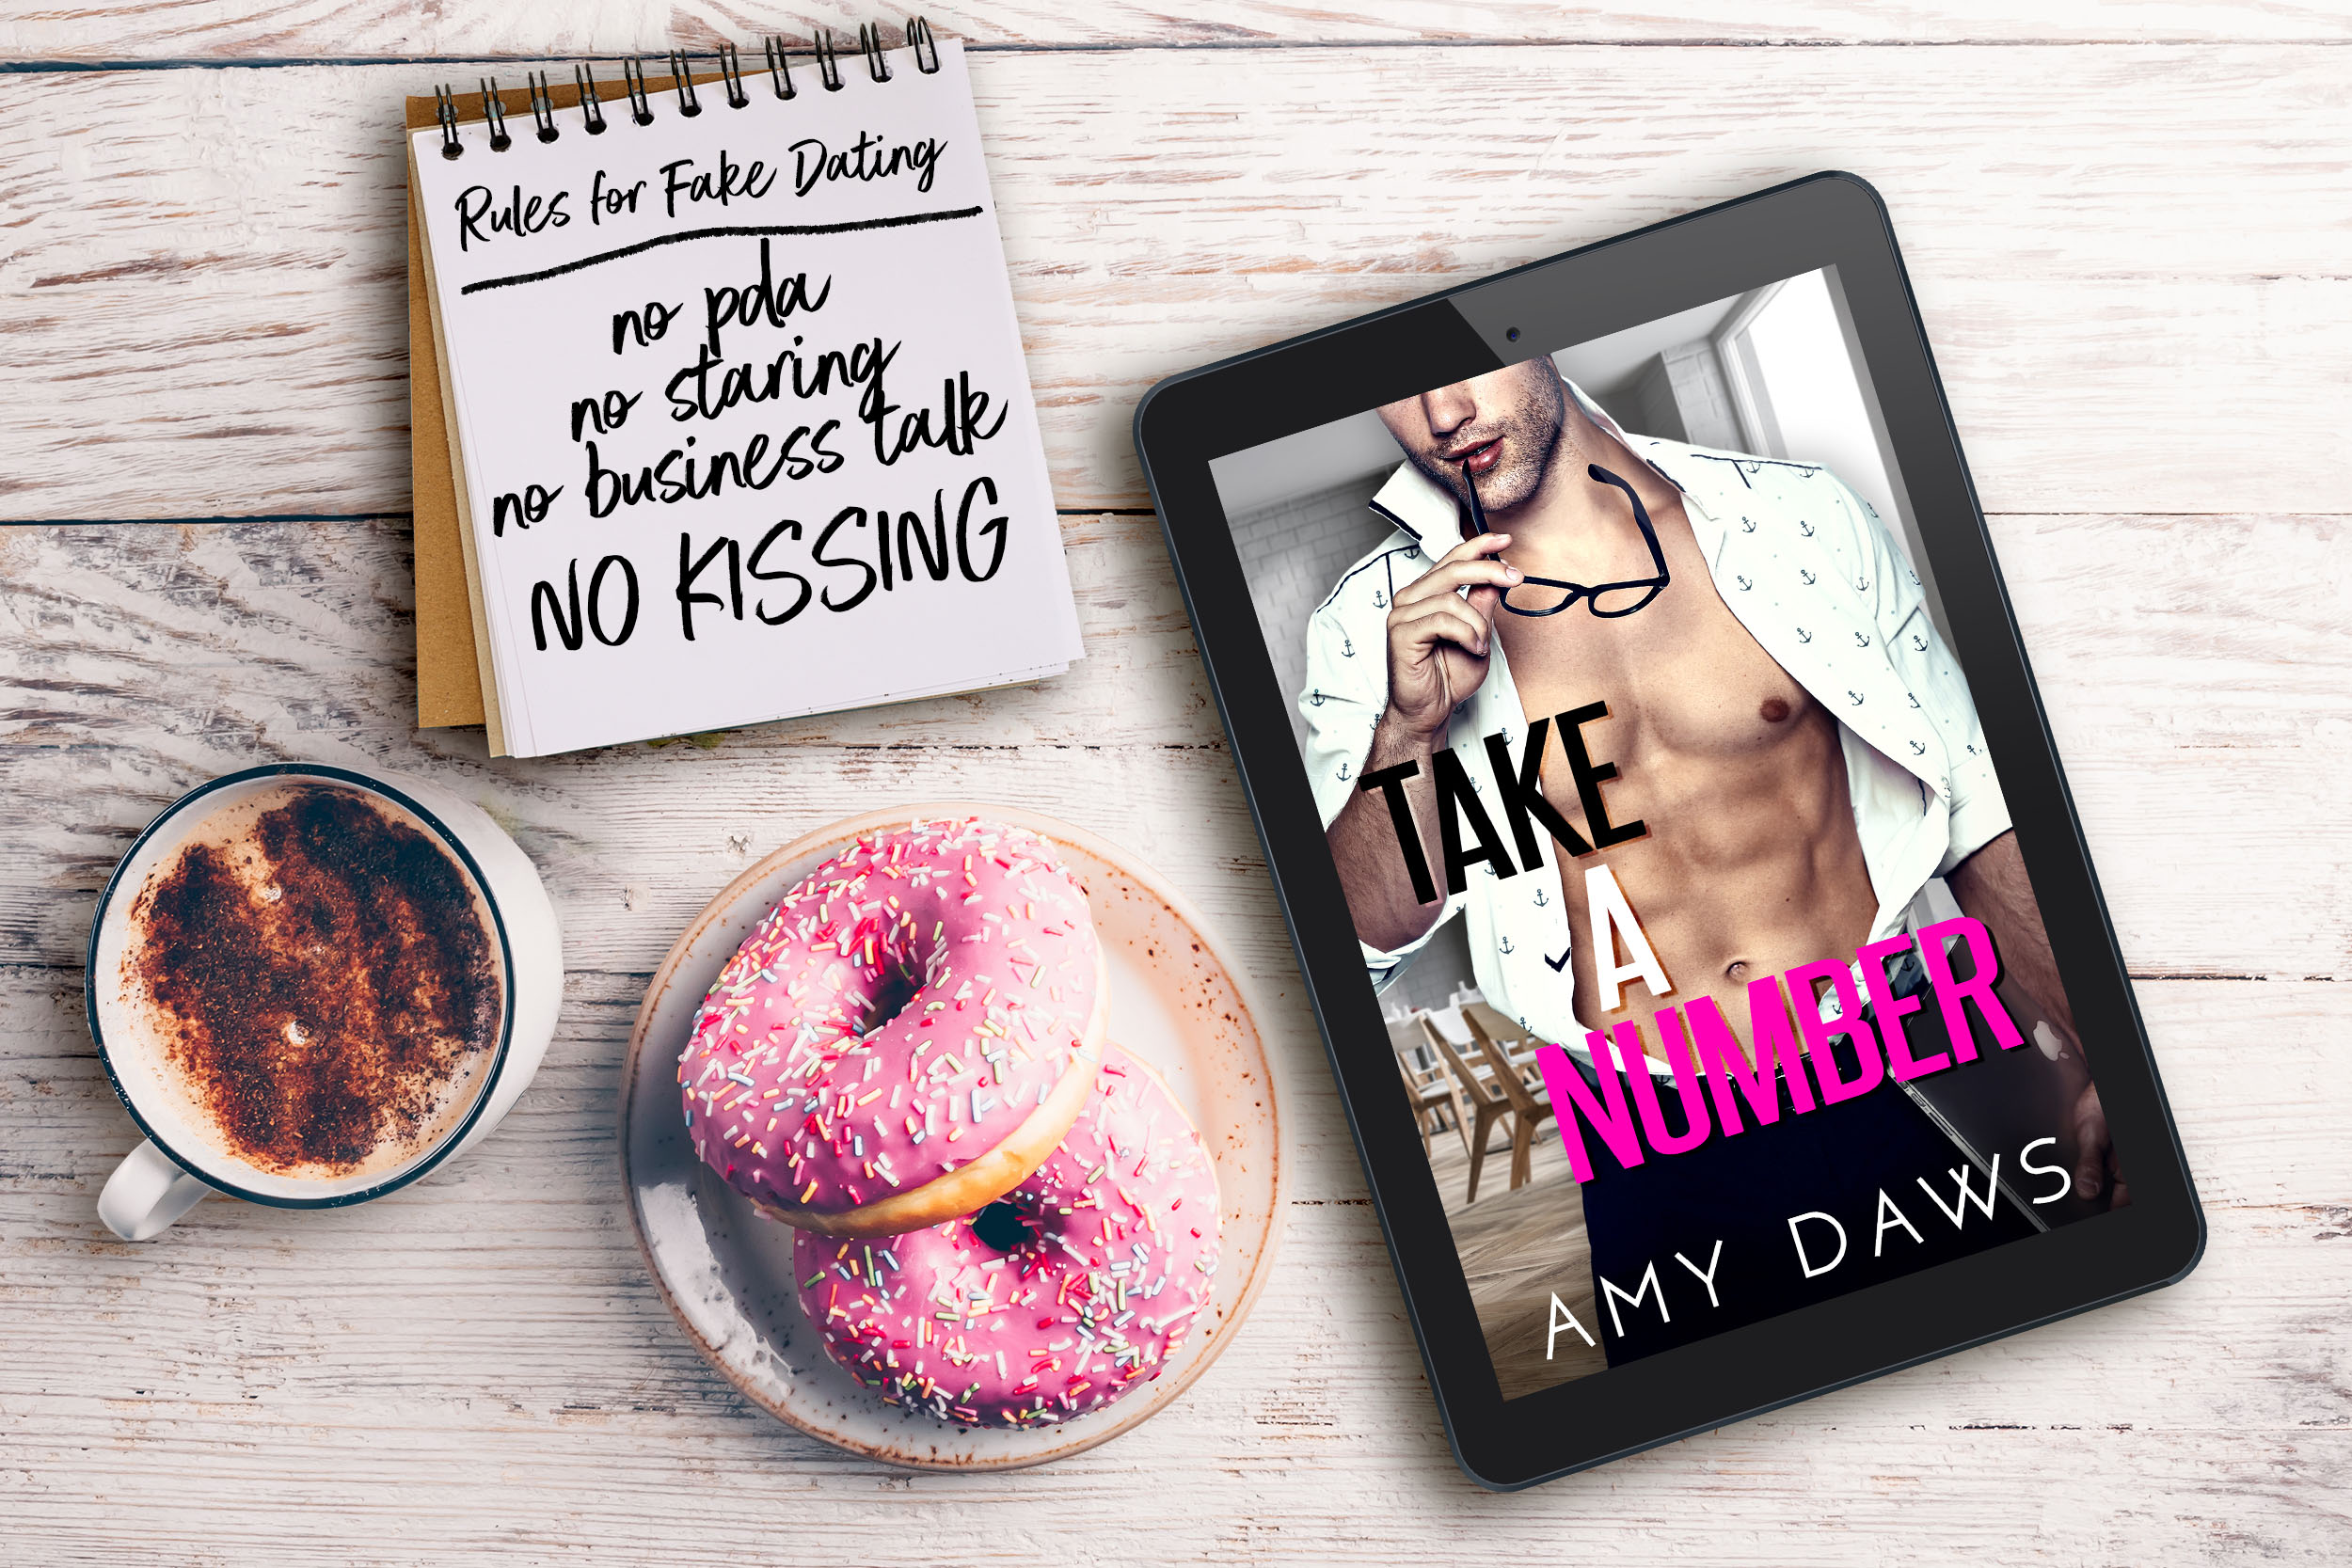 Take A Number by Amy Daws Cover Reveal